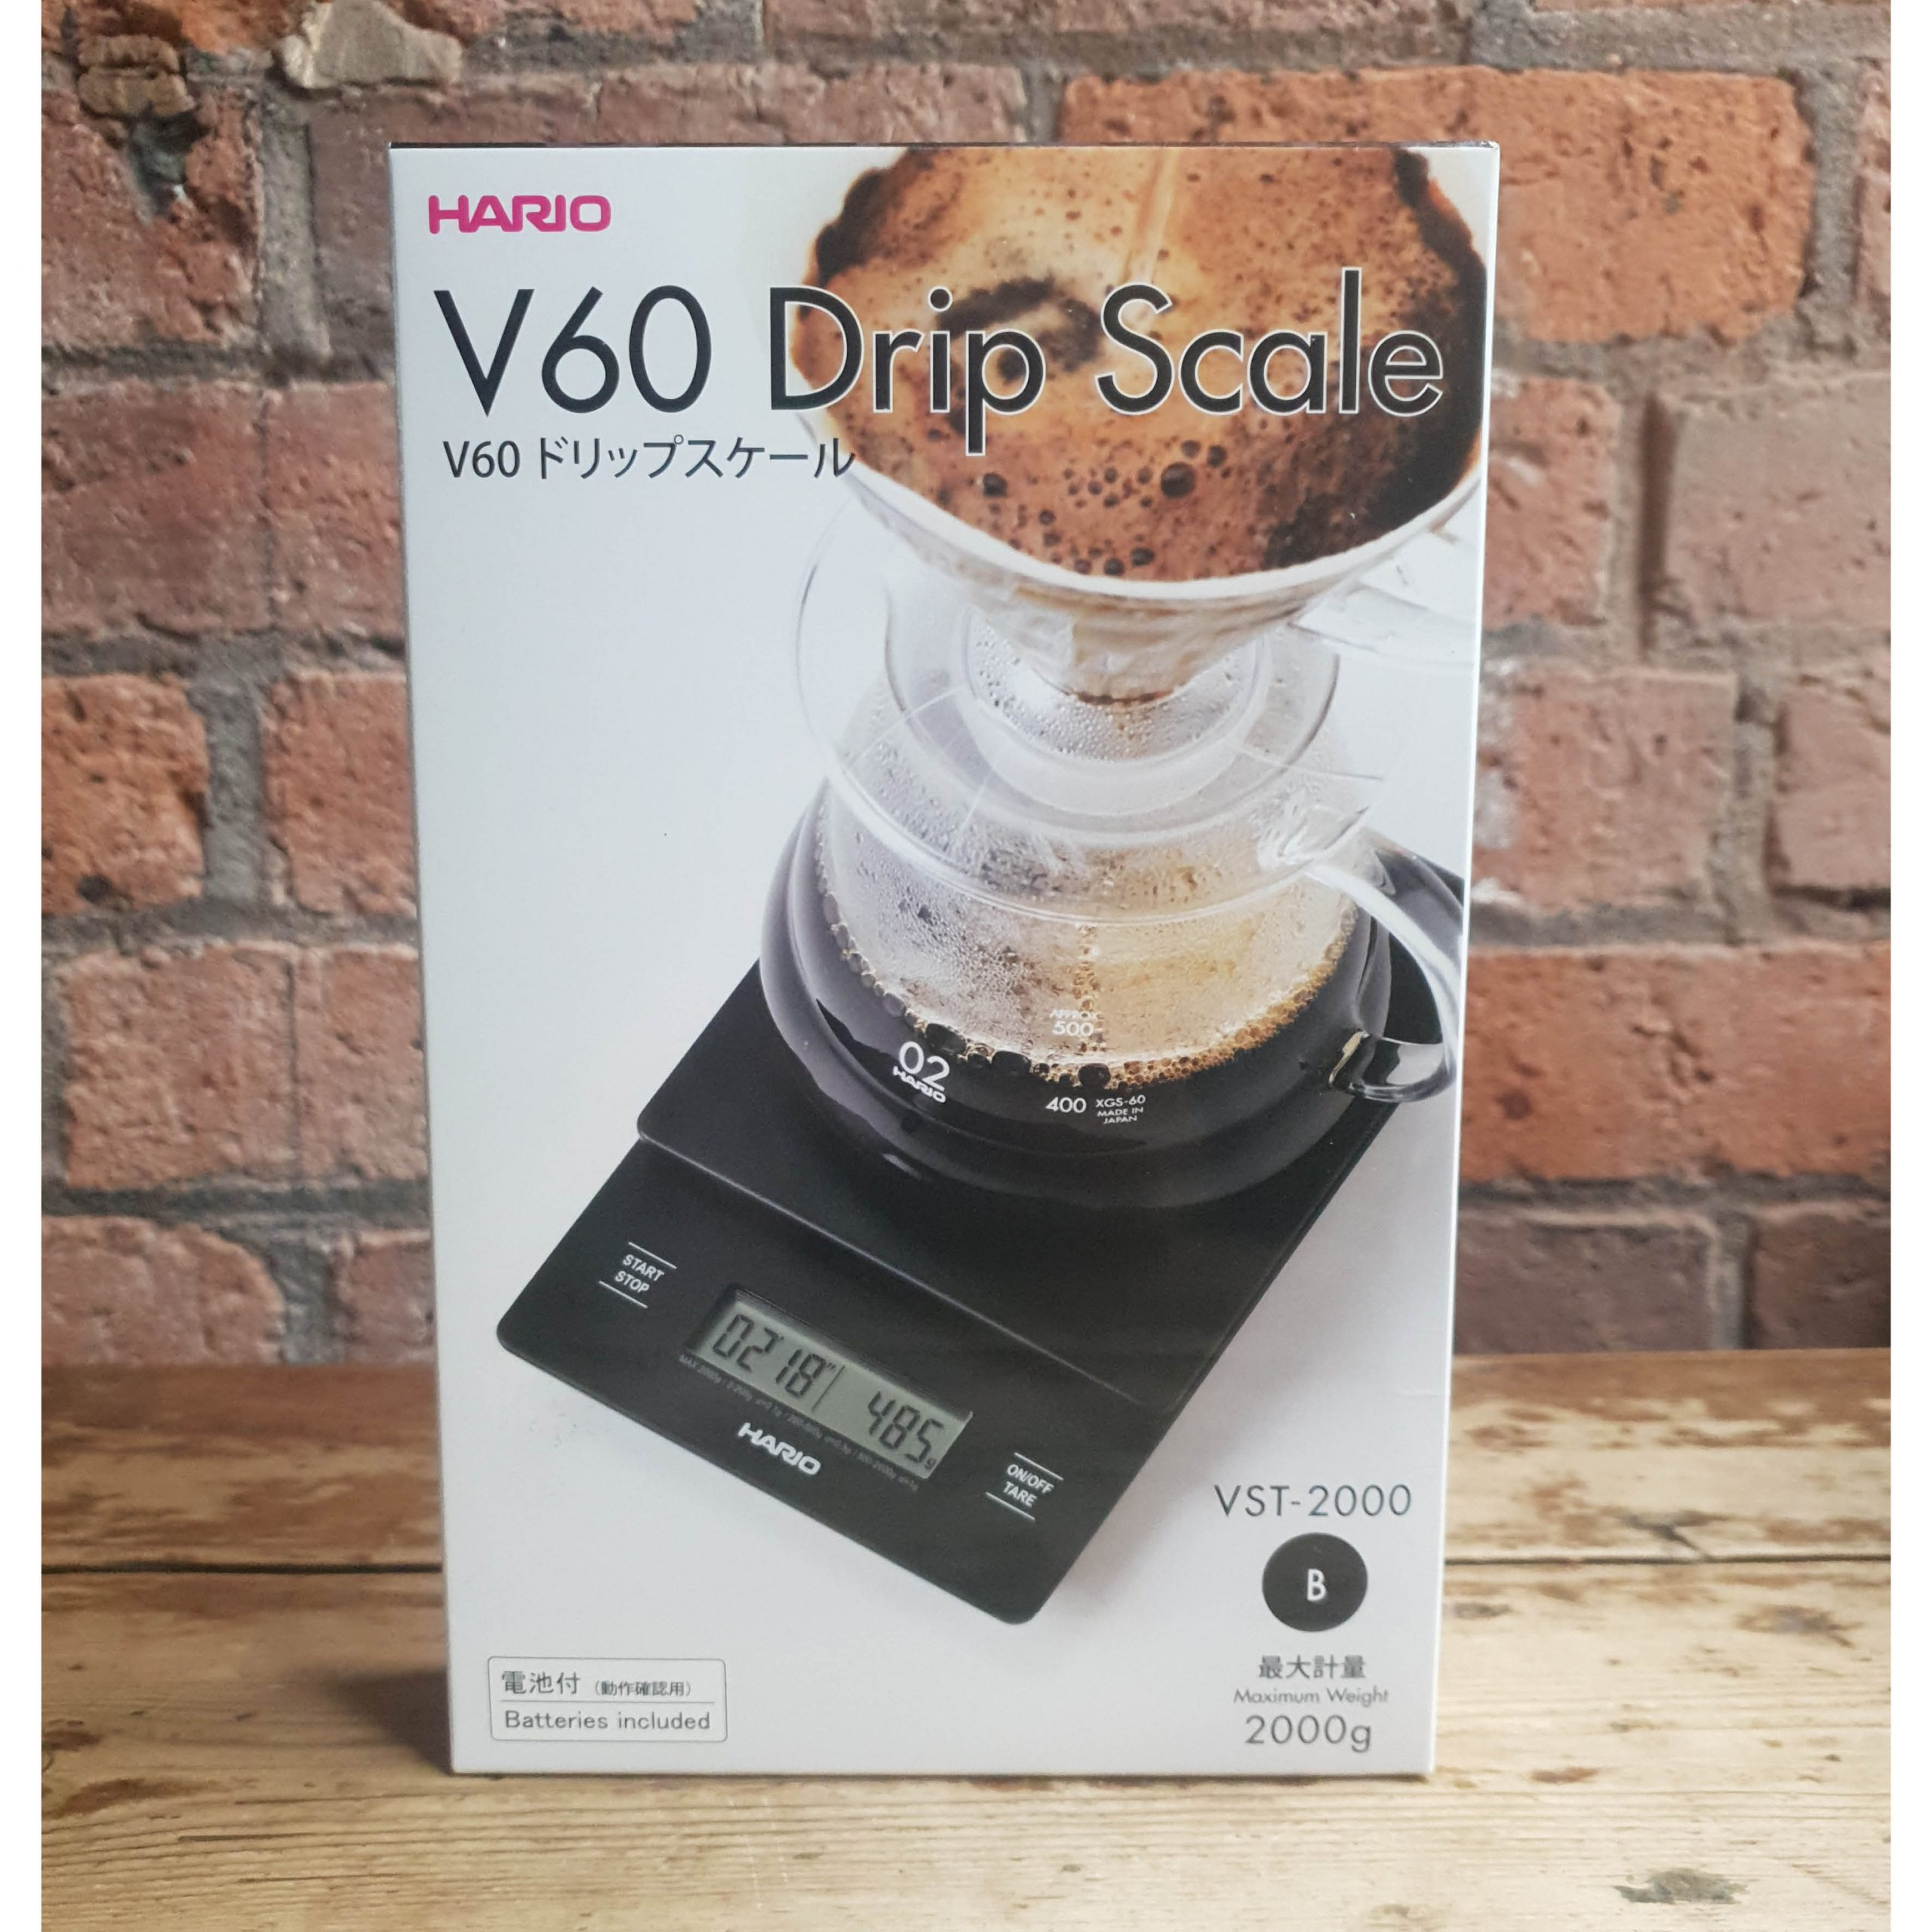 V60 Drip Scale